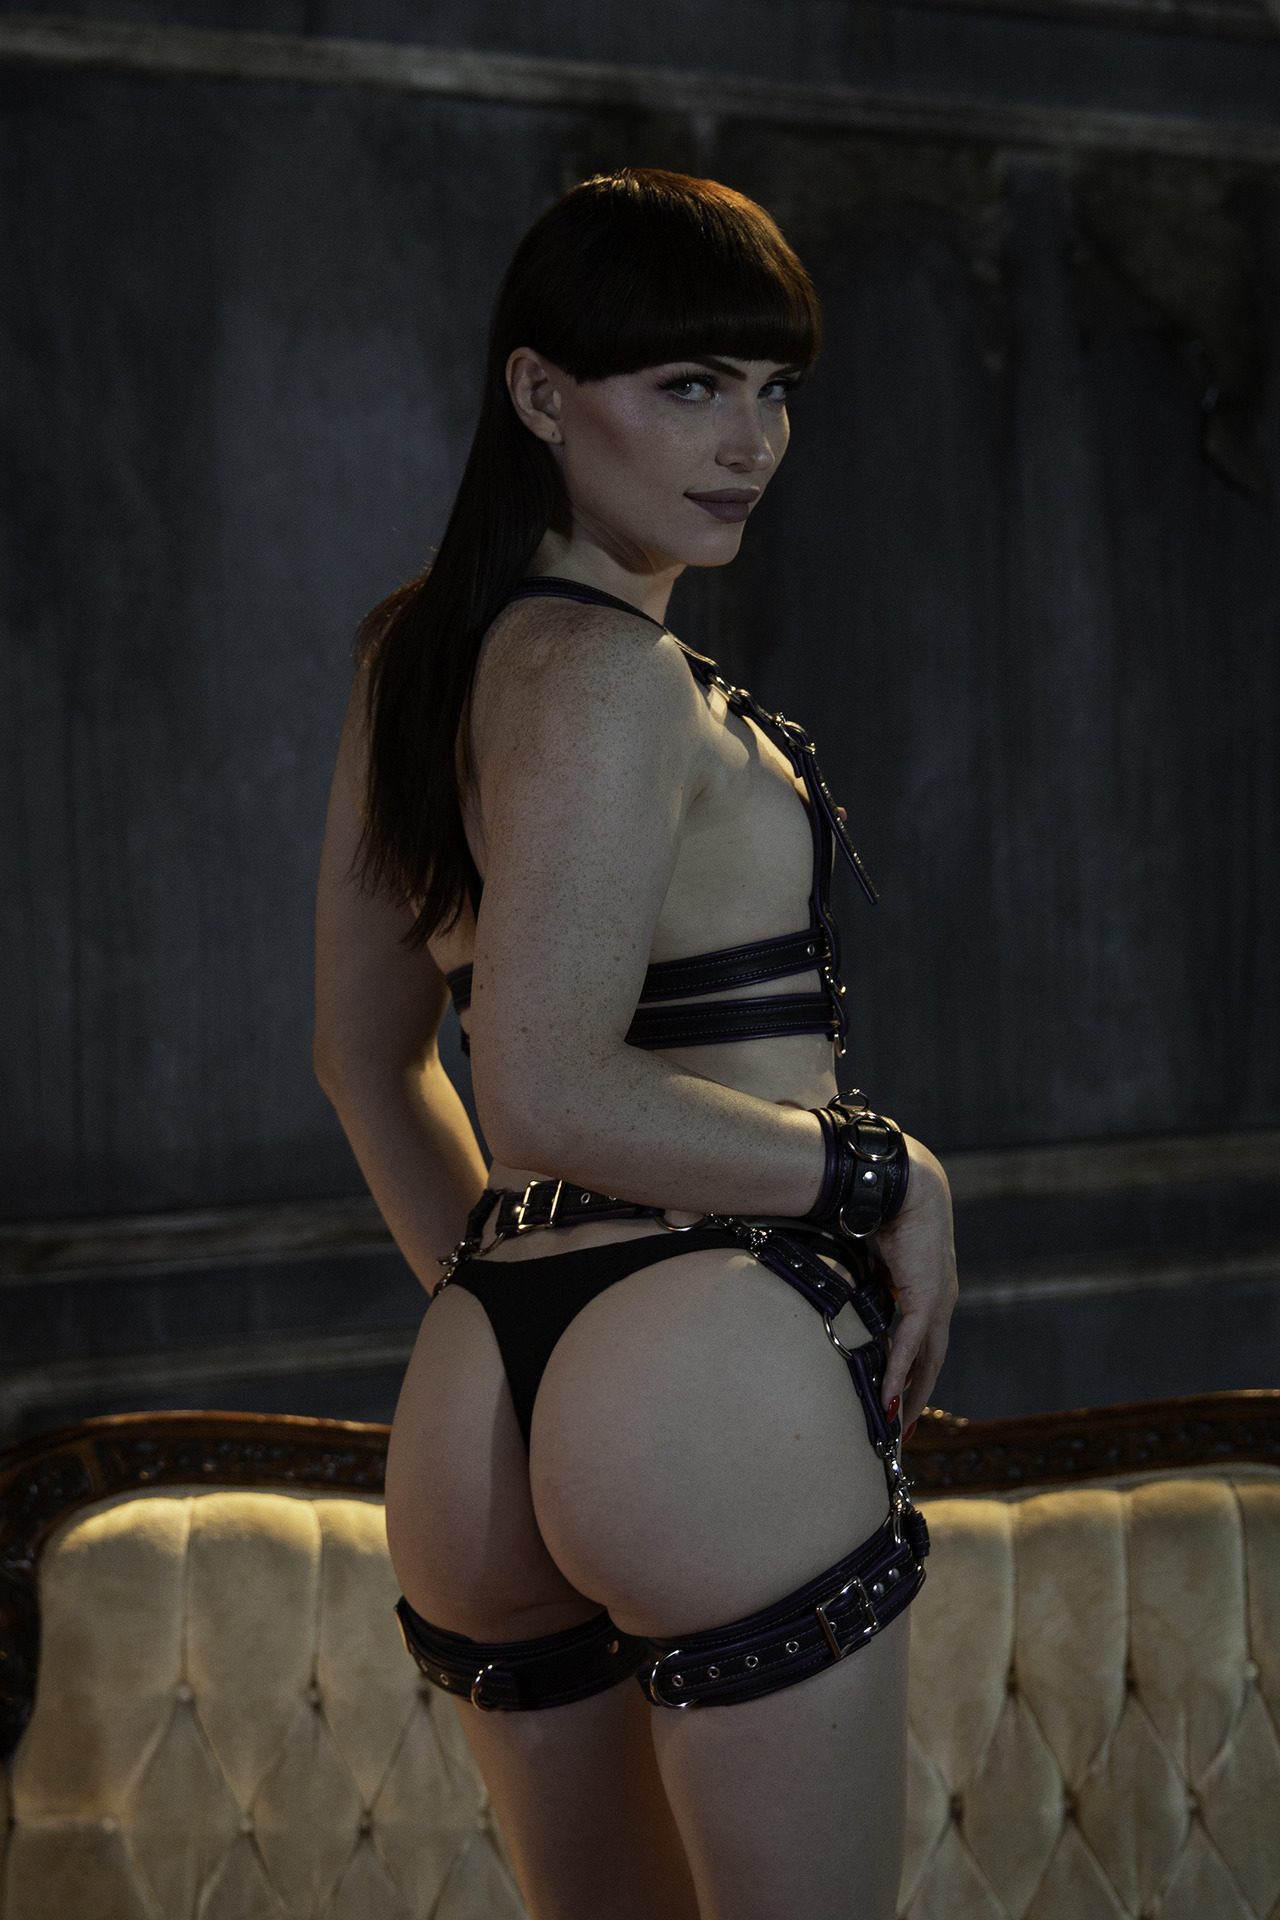 japanese lesbian forced porn tubes asian clips Shemale Shemaleporn Shemaletube Tranny Trannyporn Trannytube Shemales NatalieMars WesleyWoods ReverseCowgirl Sex Theater Ass